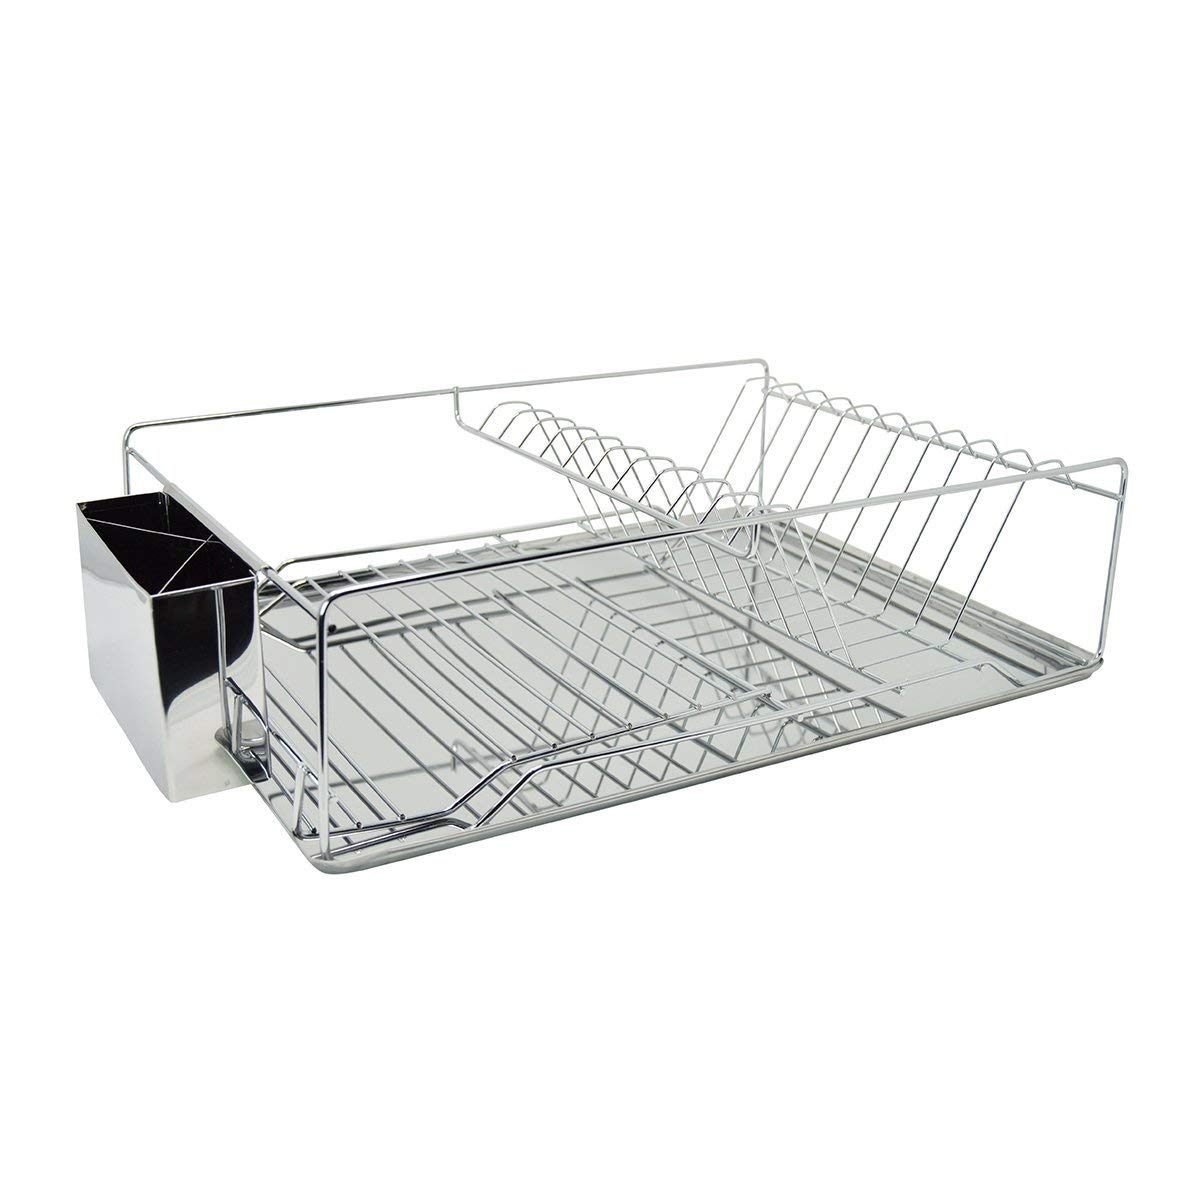 "Sweet Home Collection Dish Drainer Drying Rack 1 Tier Basic Set Drain Board and Utensil Holder Simple Easy to Use, 12"" x 19"" x 5"", Chrome"